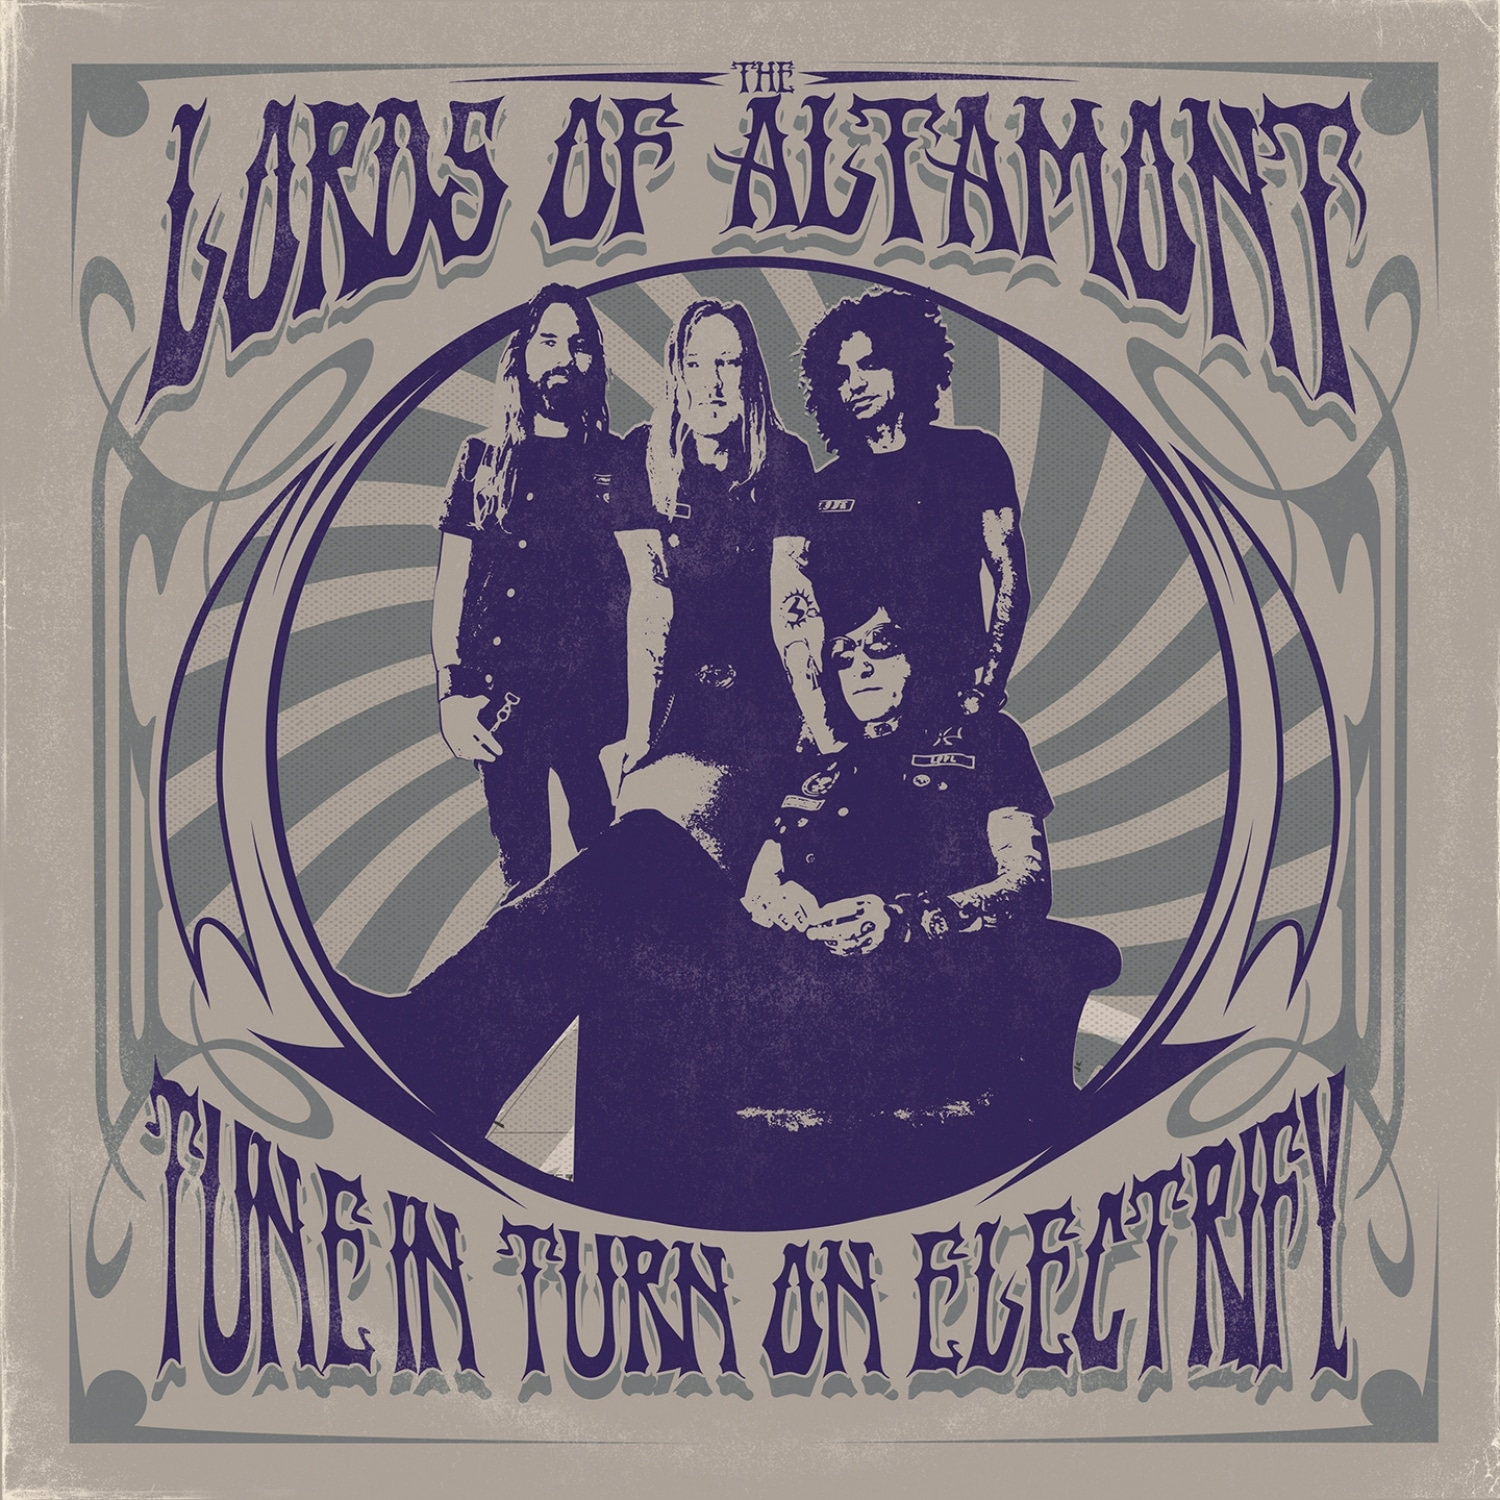 """Lords Of Altamont-""""Turn in, Turn on, Electrify!""""-2021, Heavy Psych Sounds 4 - fanzine"""